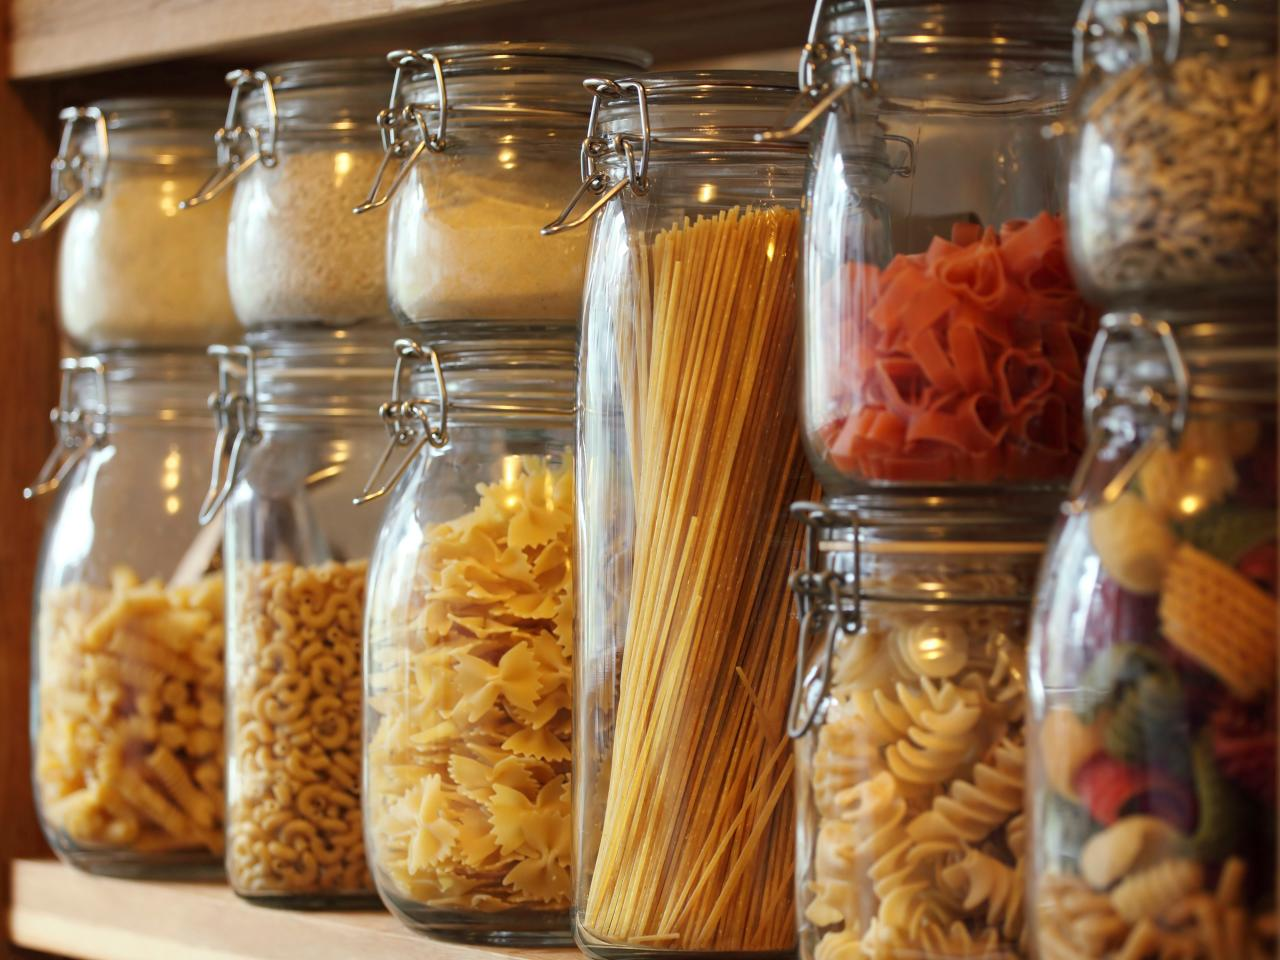 jars of different kinds of dried pasta